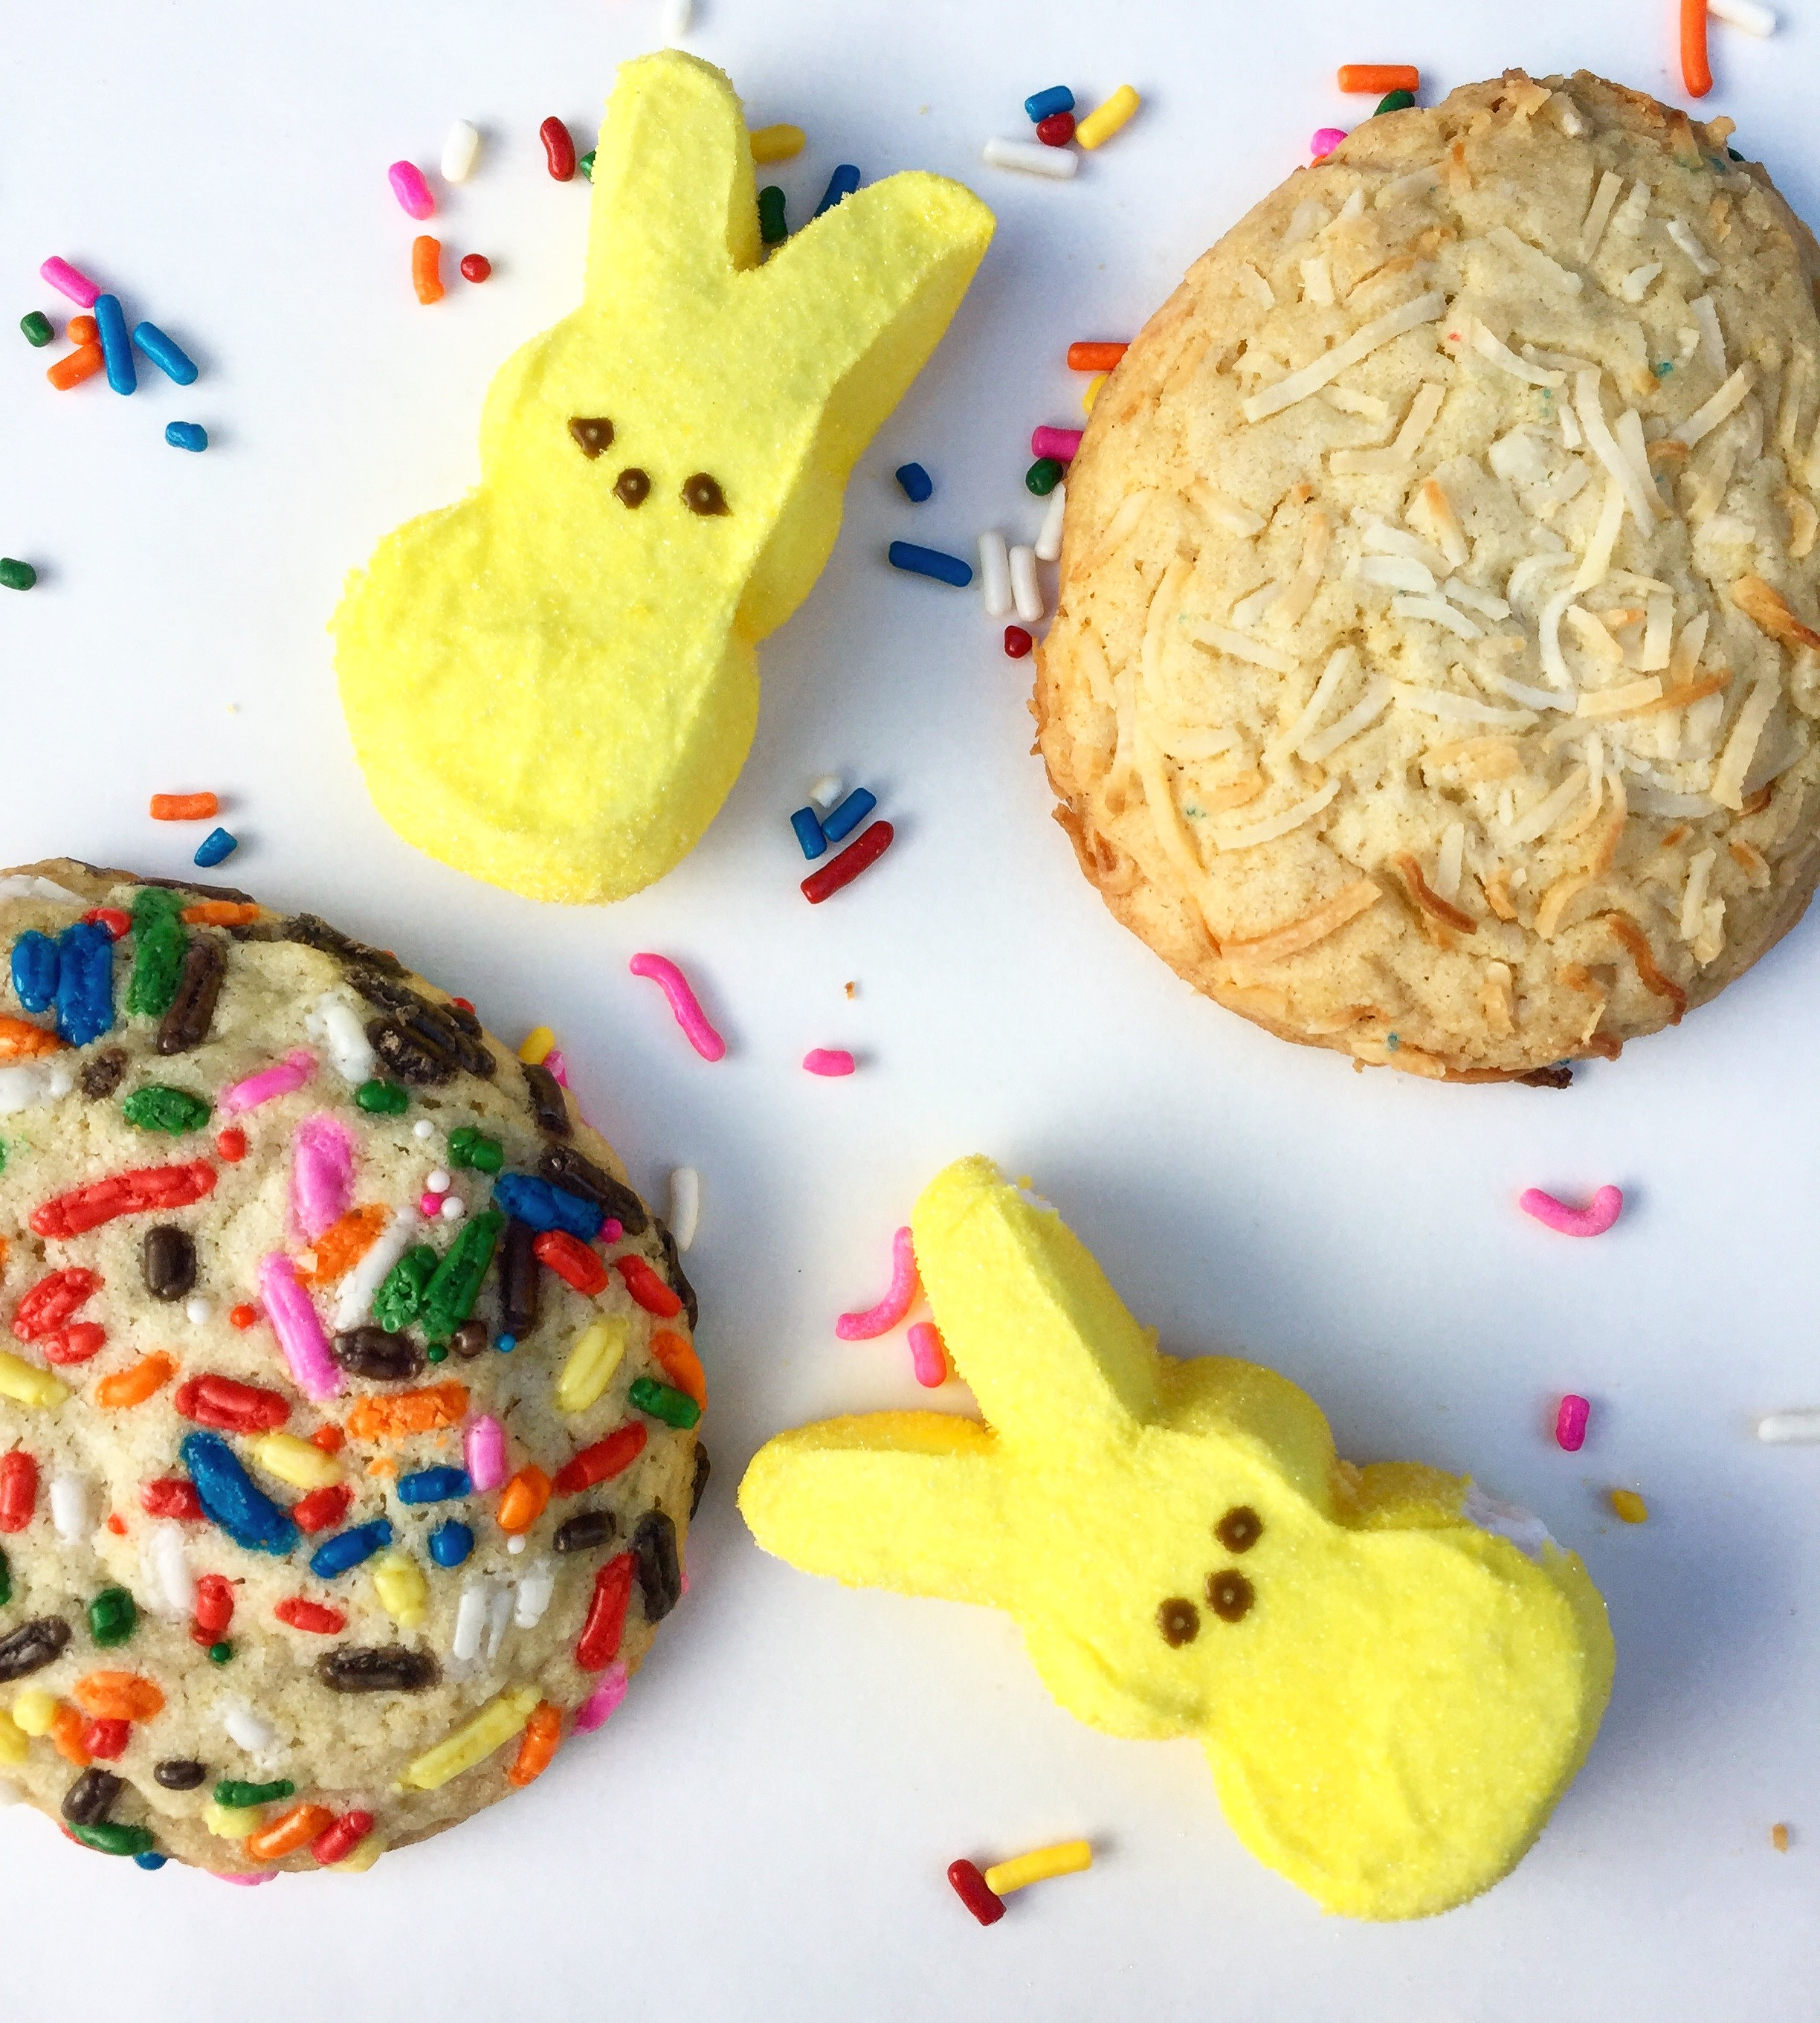 Peeps are one of my favorite Easter treats. A total sugar bomb!